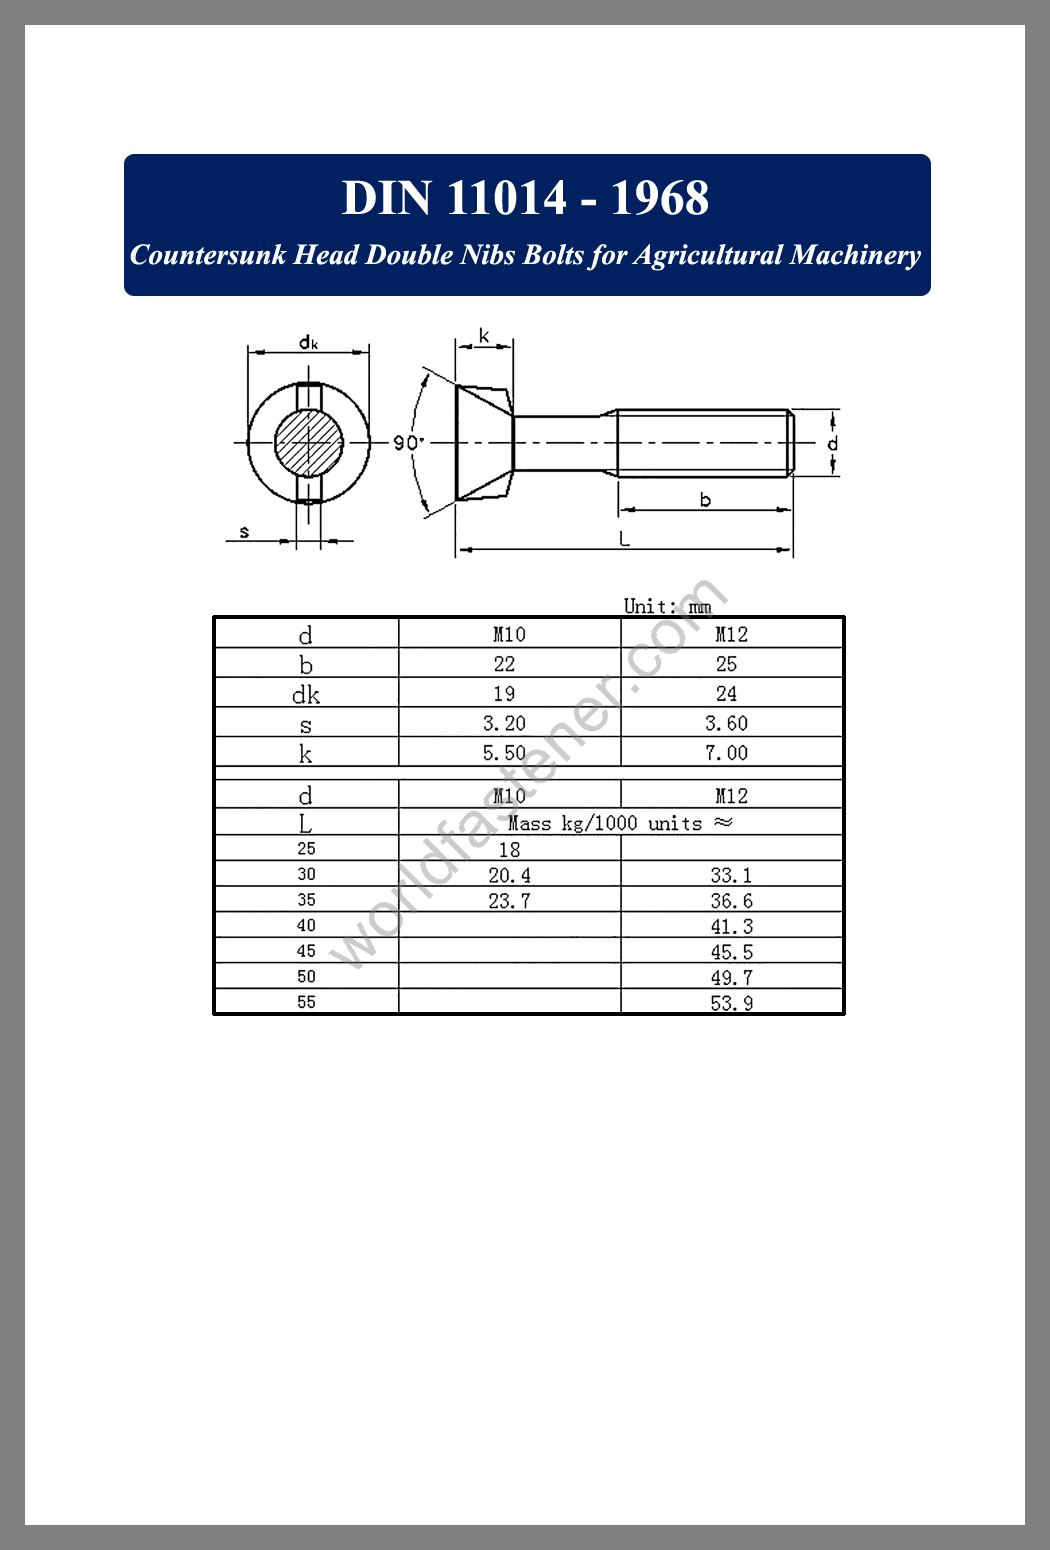 DIN 11014 Countersunk Head Double Nibs Bolts for Agricultural Machinery, Countersunk Head Bolts, Countersunk Head Screws, fastener, screw, bolt, din standard bolts, din standard screws